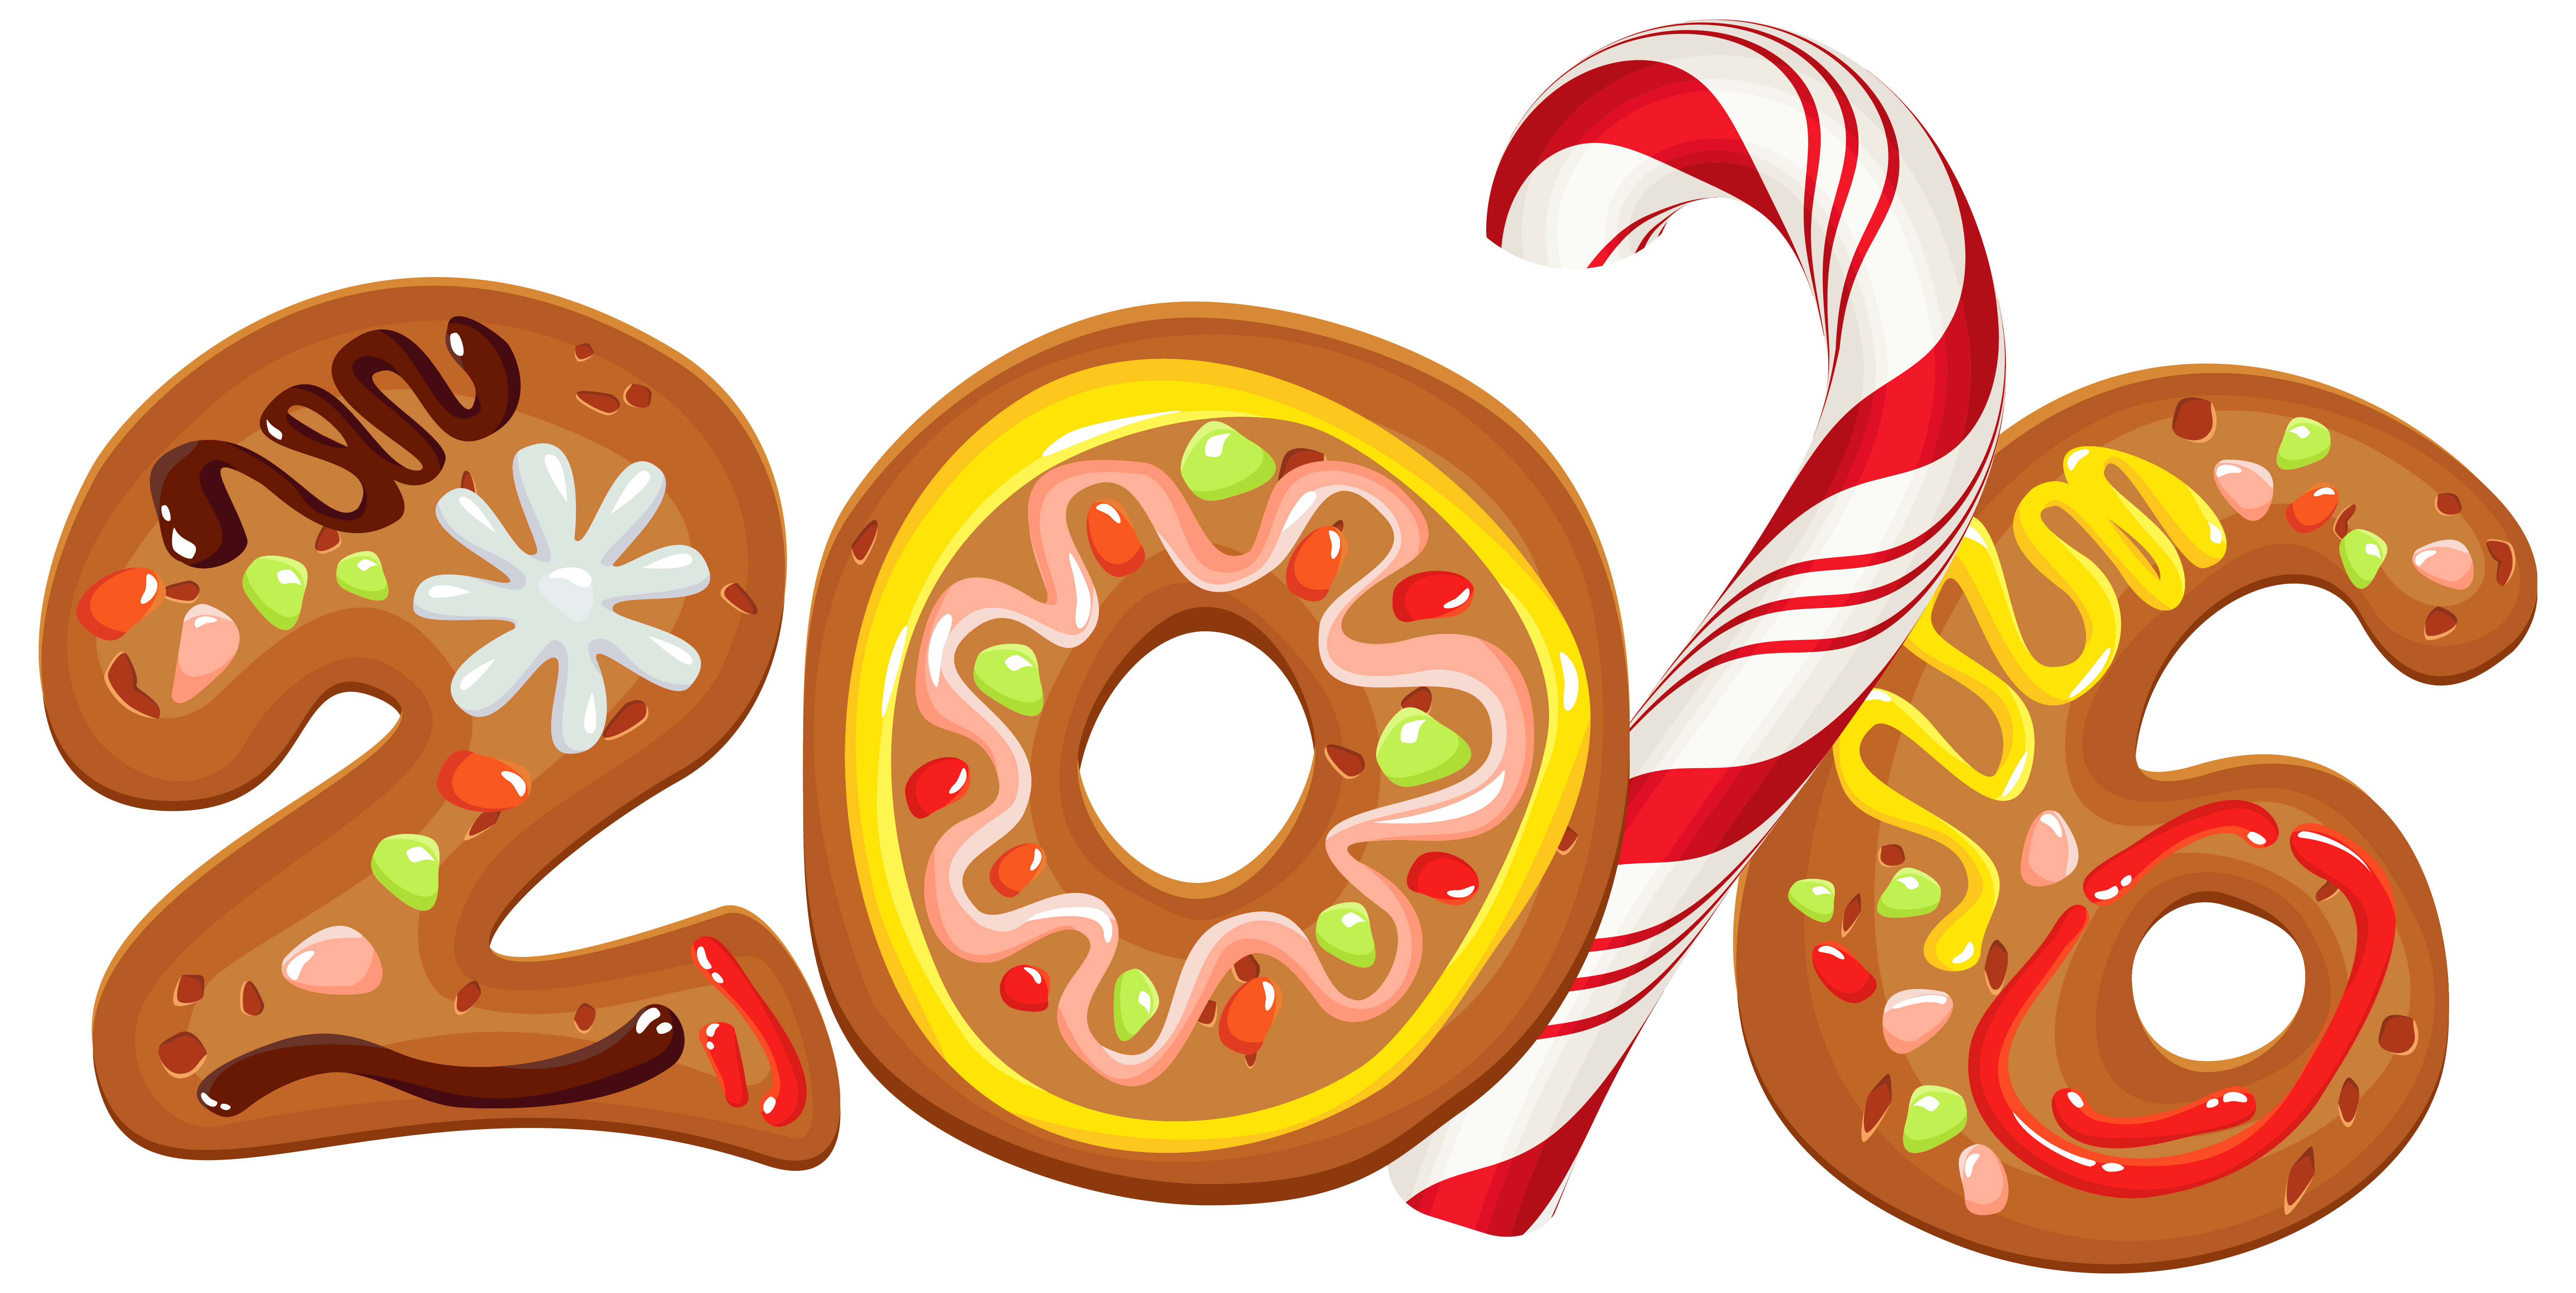 freeuse download 2016 clipart.  cookie style png.